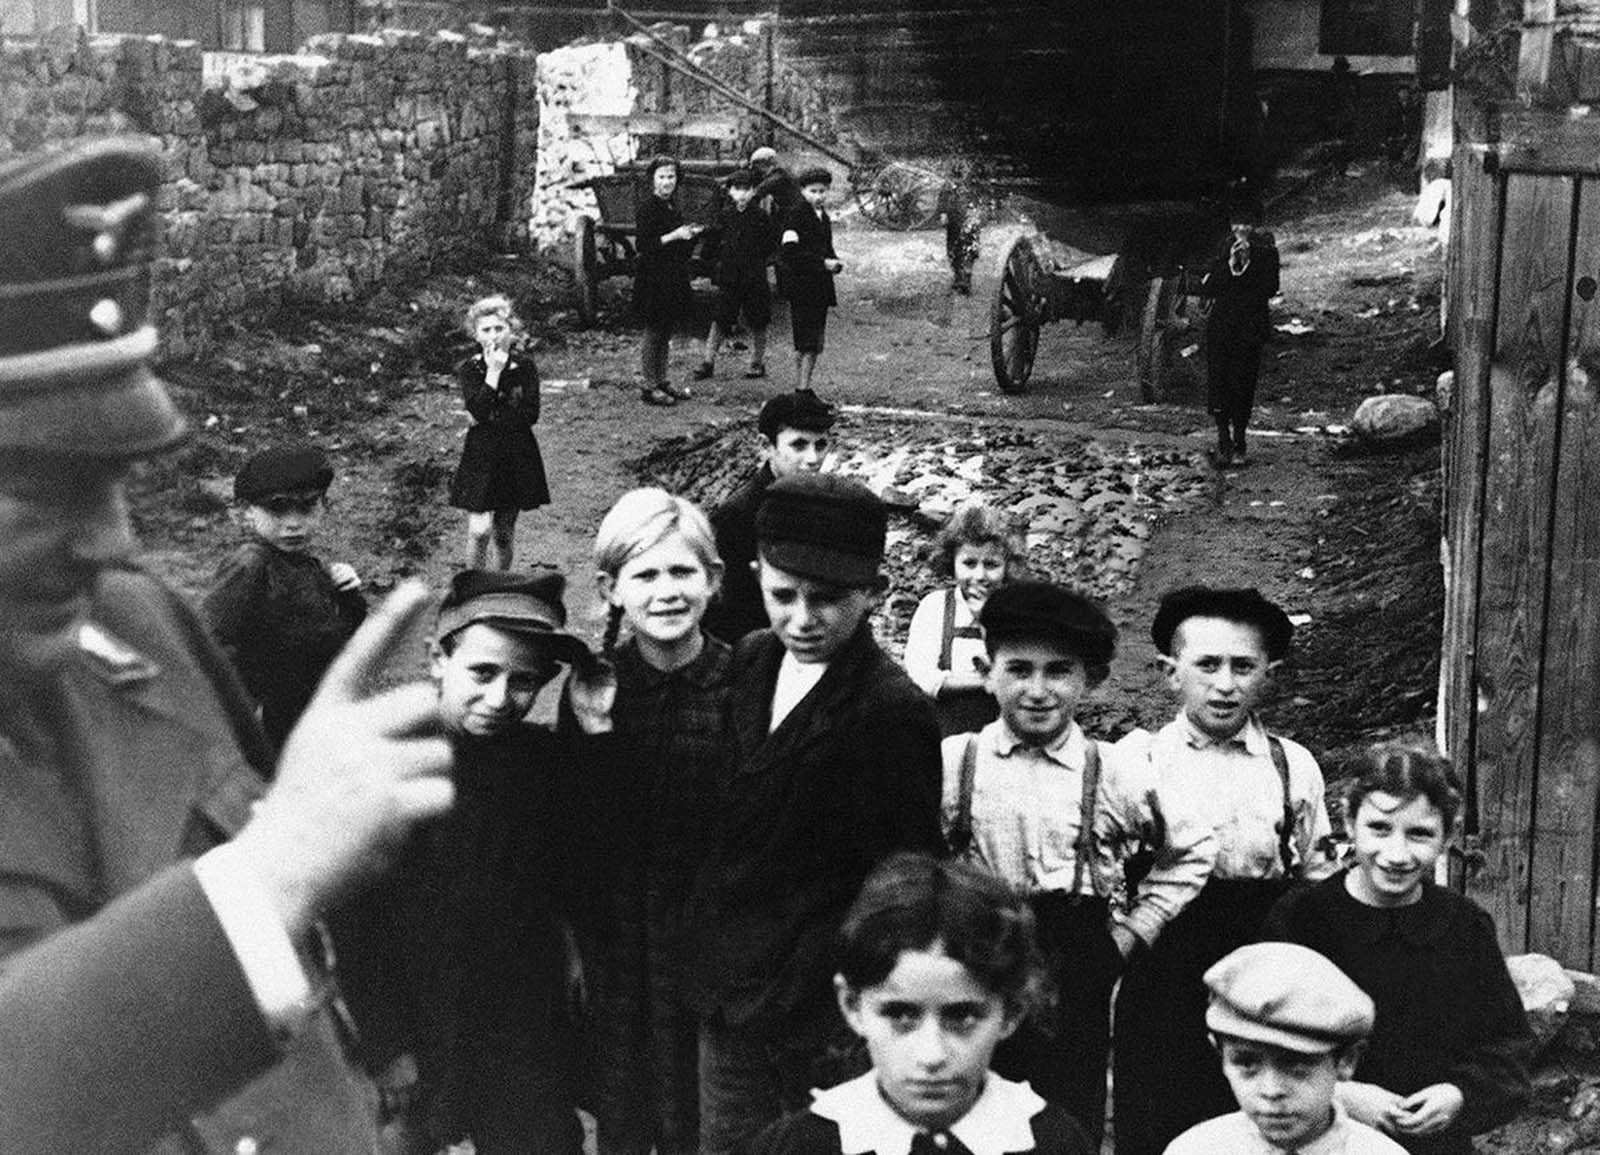 A German Army officer lecturers children in a ghetto in Lublin, German-occupied Poland, on December 1940, telling them